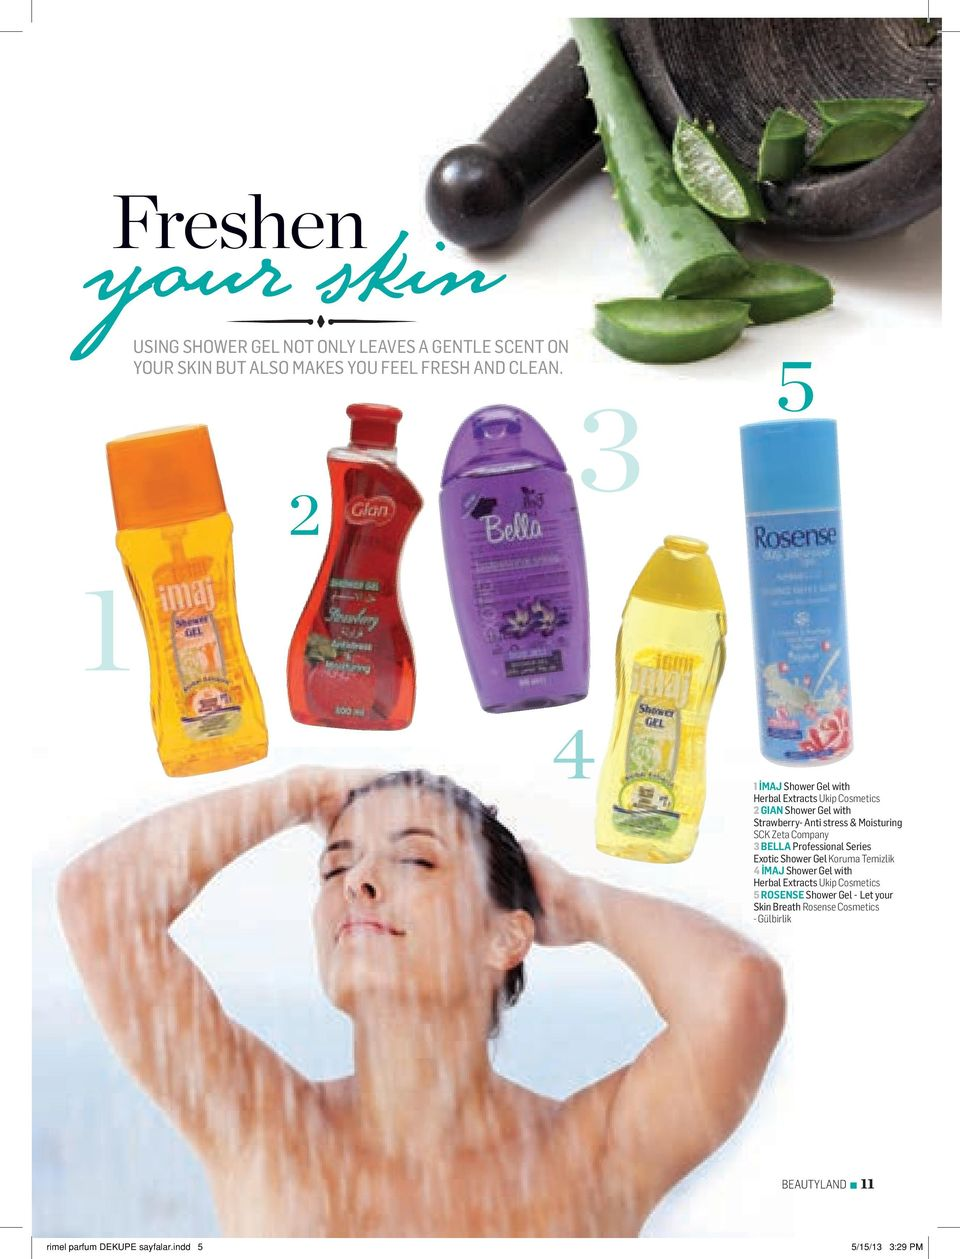 Zeta Company 3 BELLA Professional Series Exotic Shower Gel Koruma Temizlik 4 İMAJ Shower Gel with Herbal Extracts Ukip Cosmetics